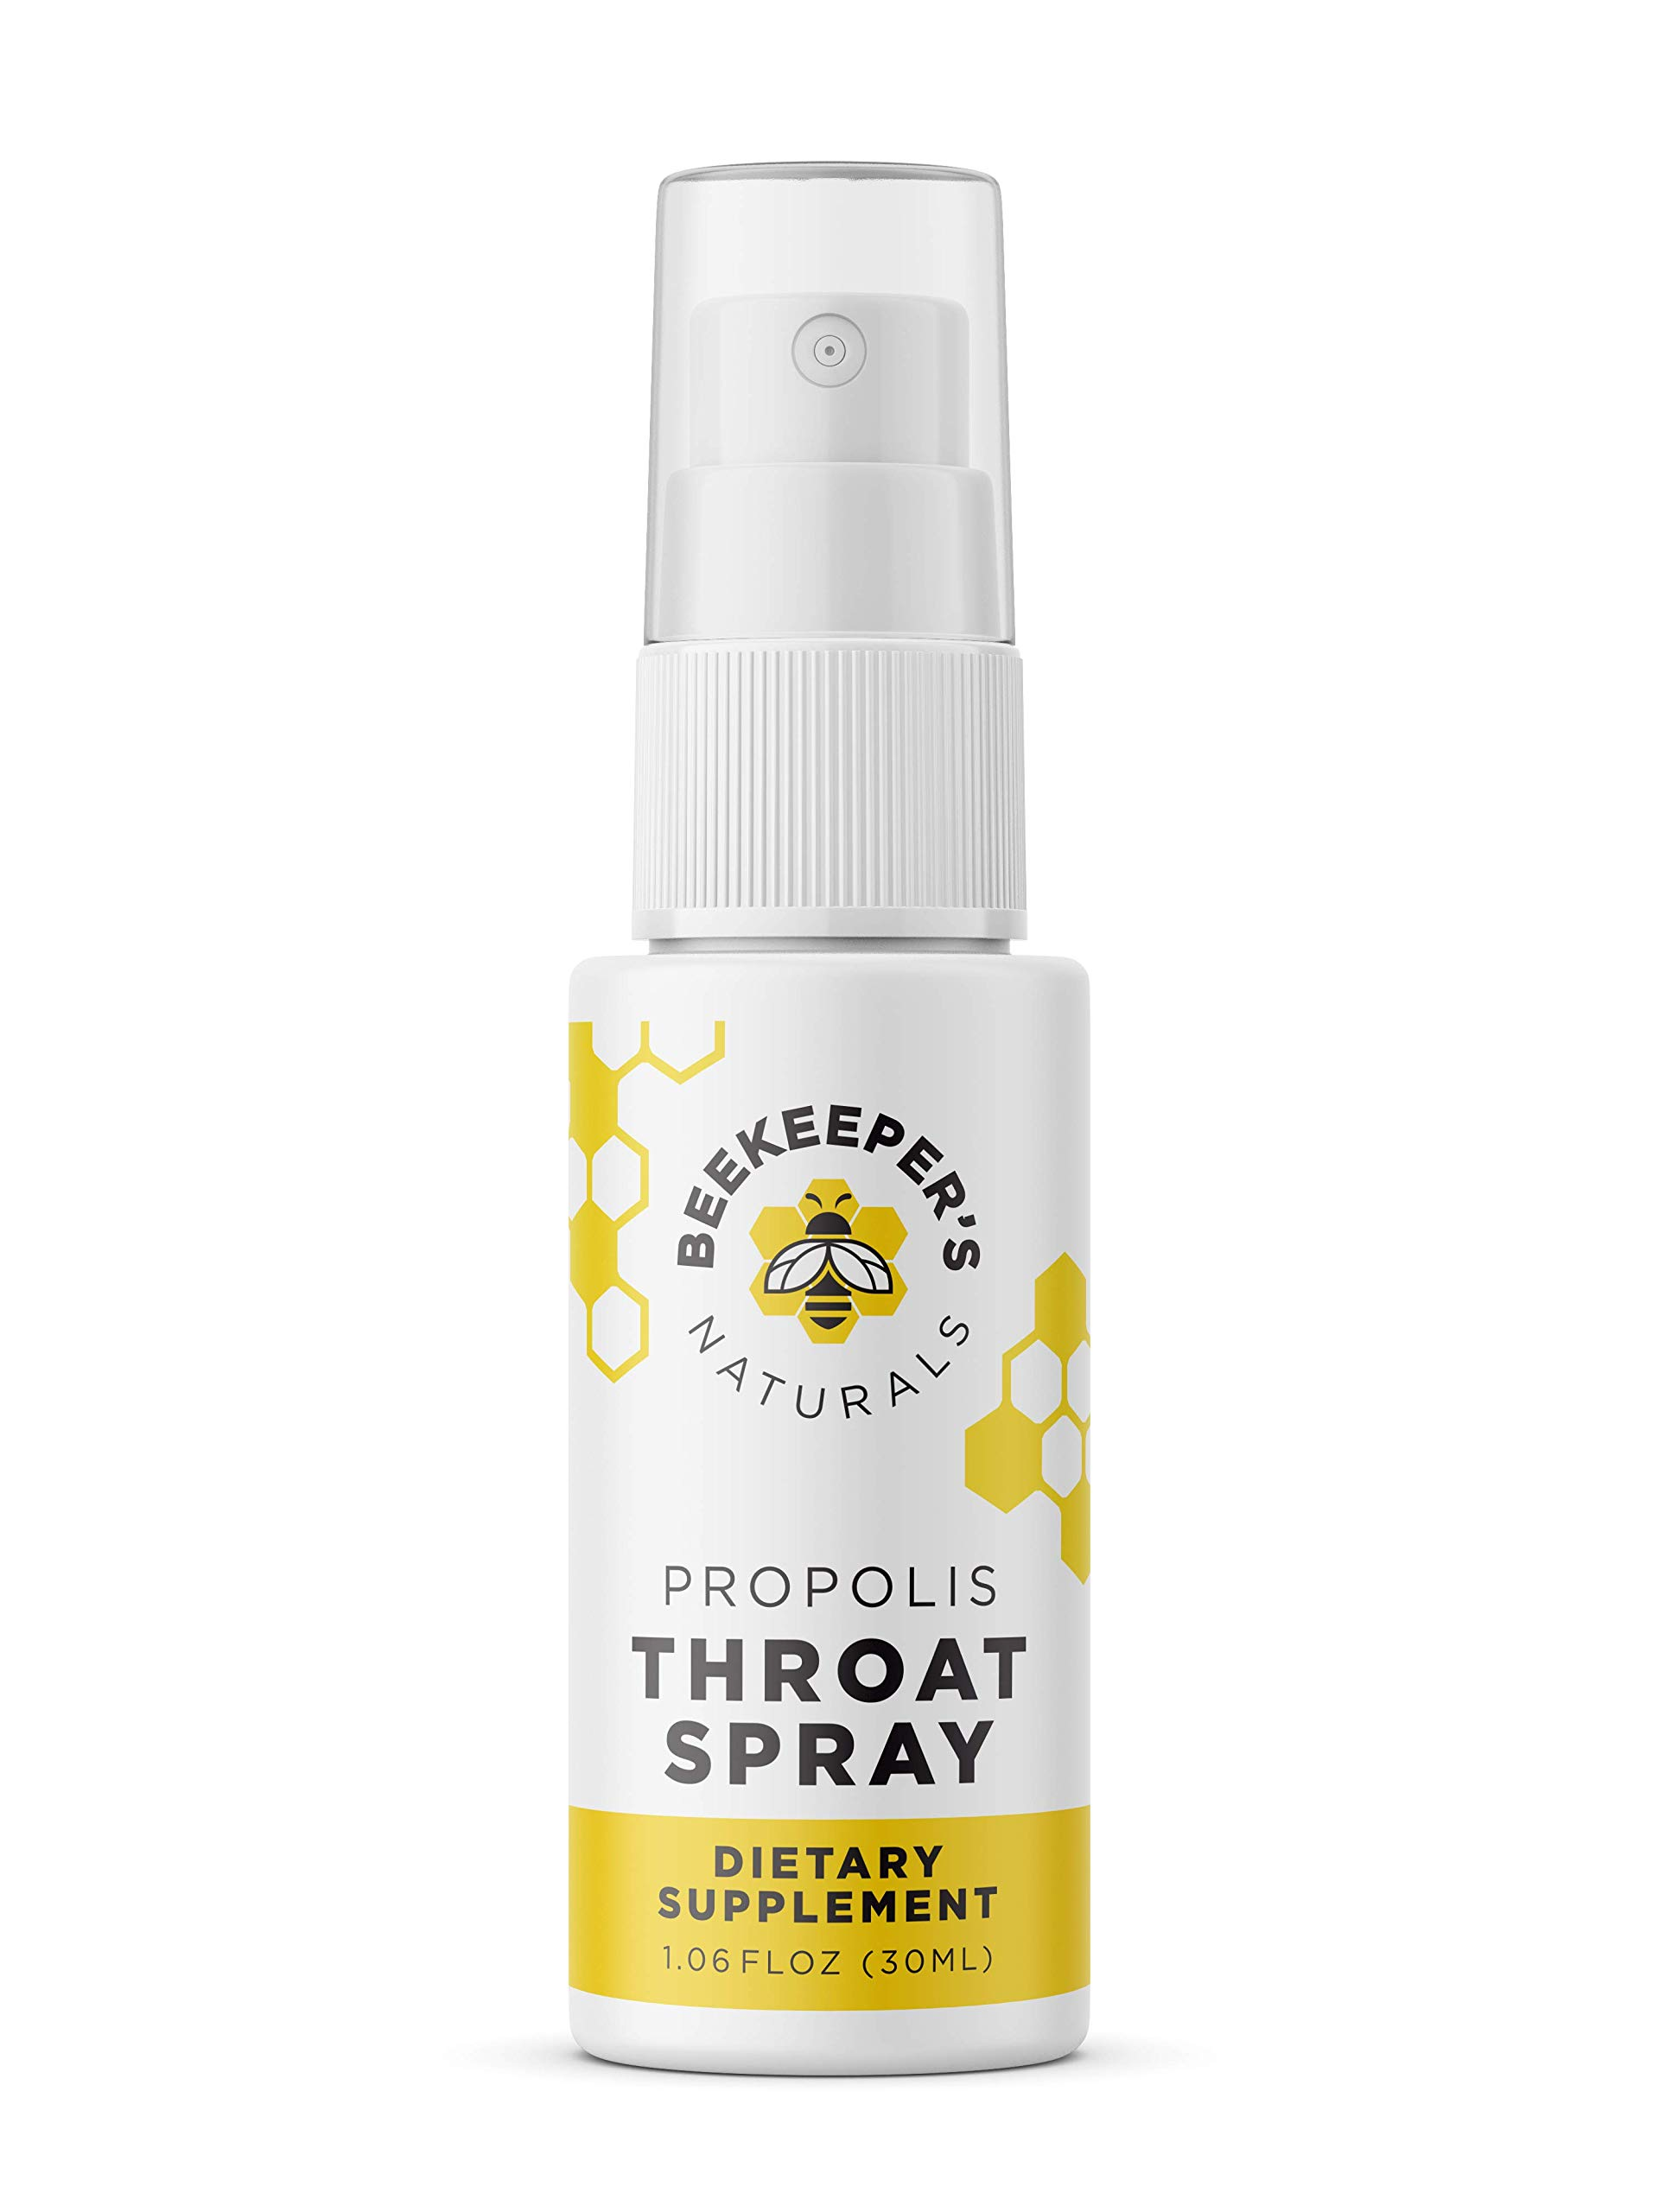 Bee Propolis Throat Spray by Beekeeper's Naturals | Premium 95% Bee Propolis Extract | Natural Throat Relief and Immune Support | Great for Cold & Flu Symptoms by Beekeeper's Naturals